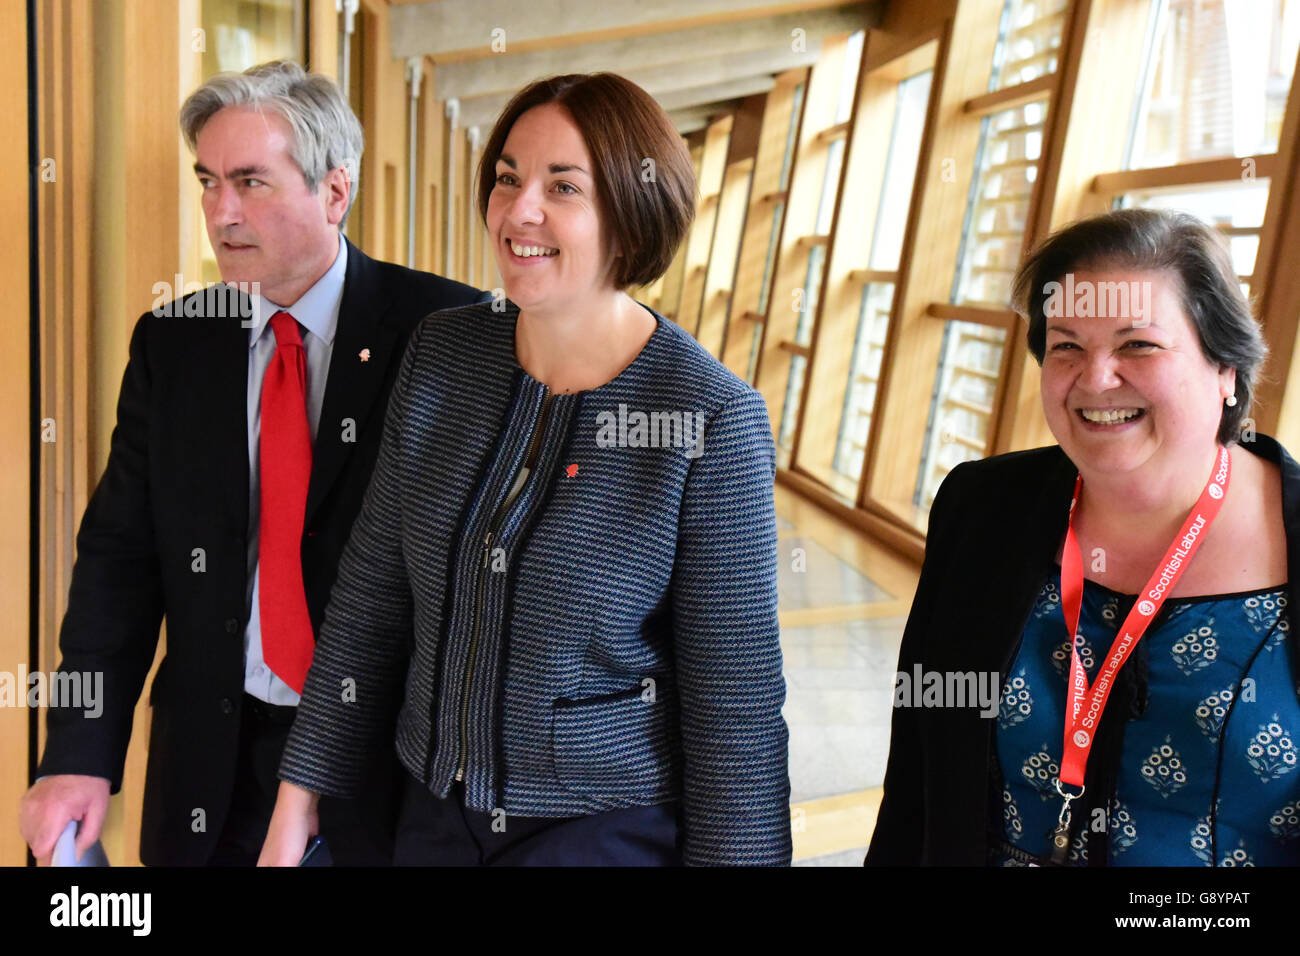 Edinburgh, Scotland, United Kingdom, 30, June, 2016. Scottish Labour leader Kezia Dugdale (C) on her way to First - Stock Image